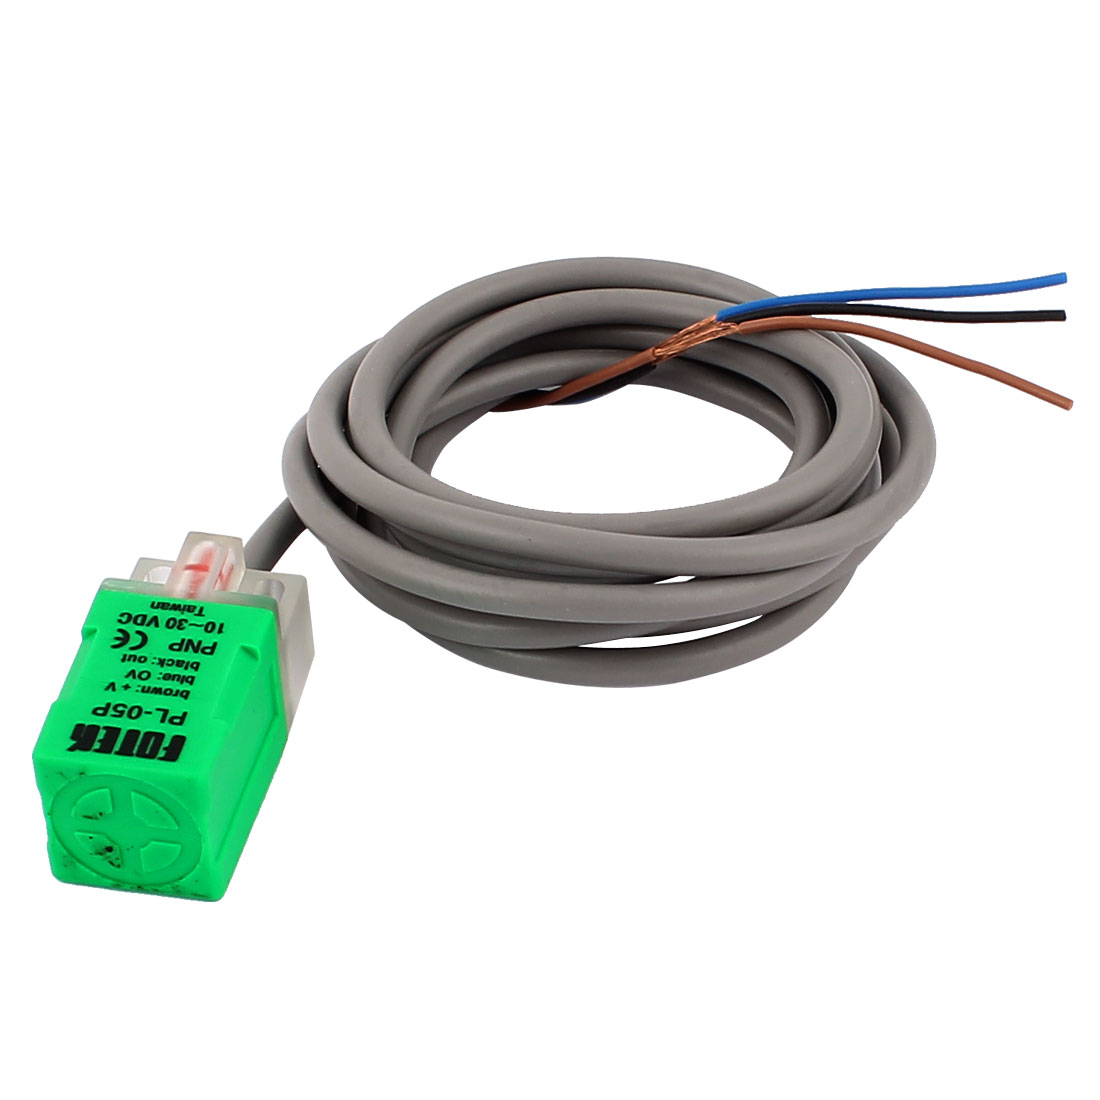 DC 102-30V 3 Wires 5mm Detection Distance Proximity Sensor Switch NPN NO PL-05P - image 4 of 4